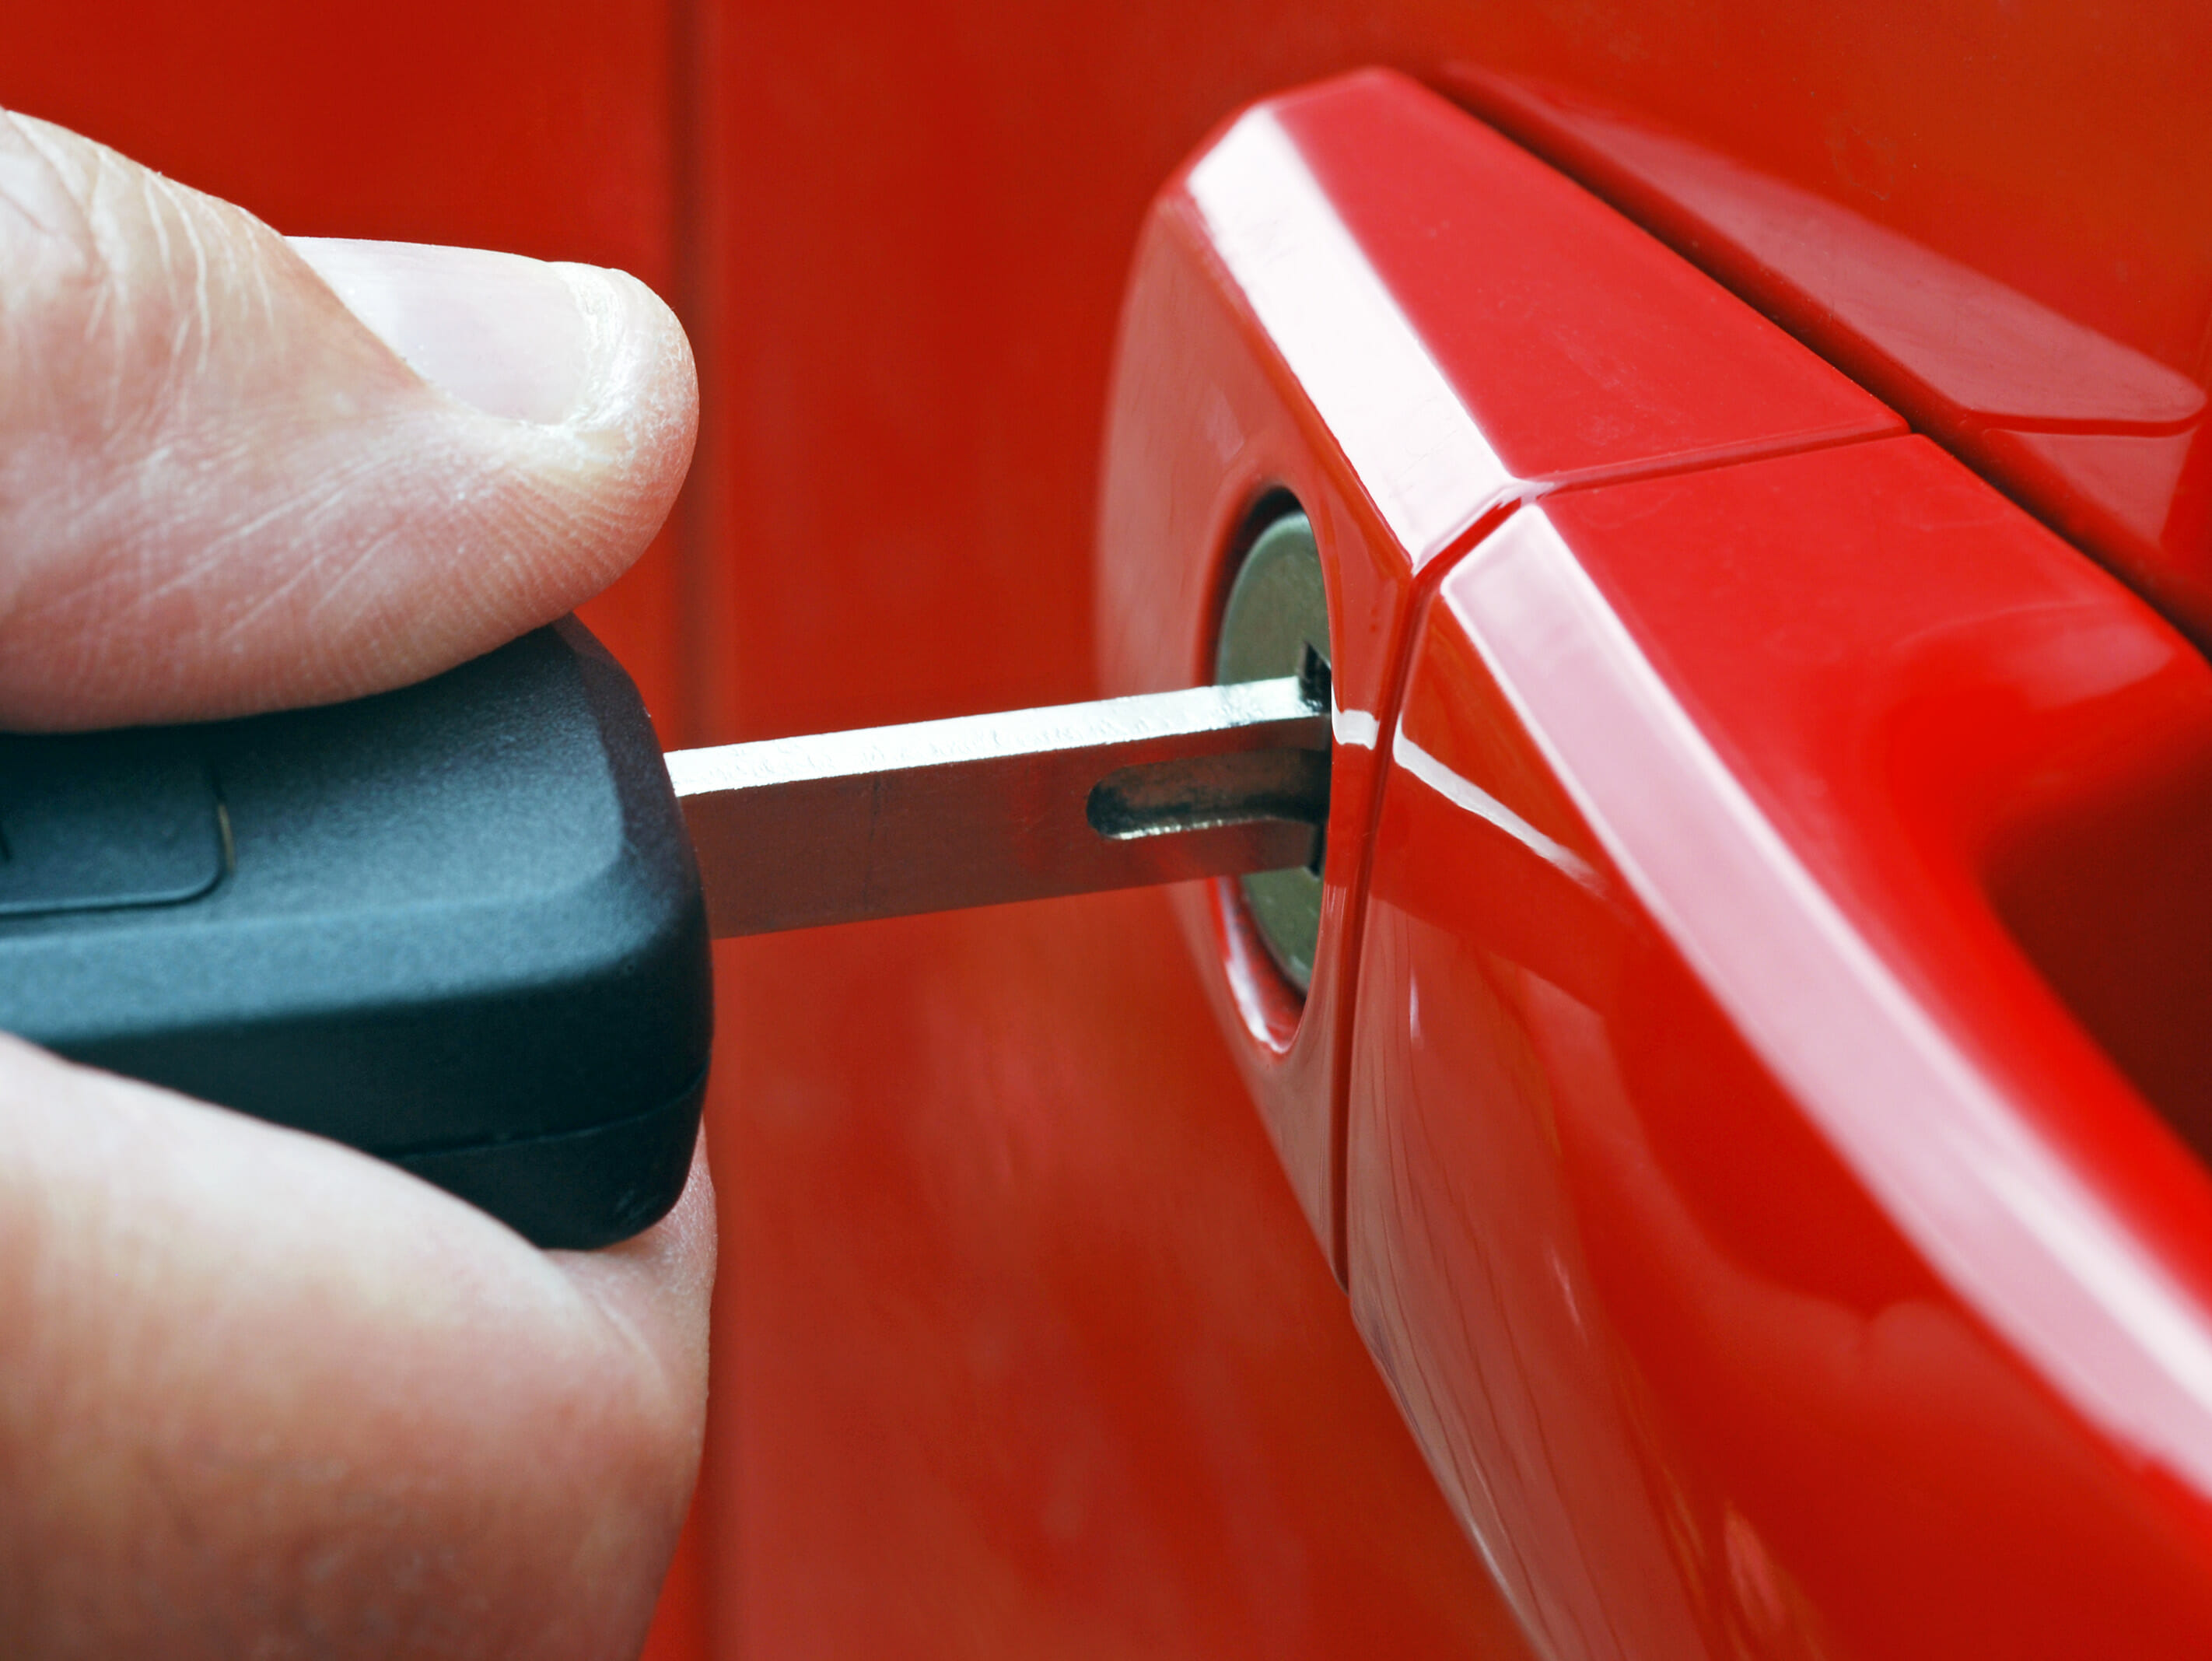 Car Lock Repairs - Broken or Damaged | Find a Auto Locksmith